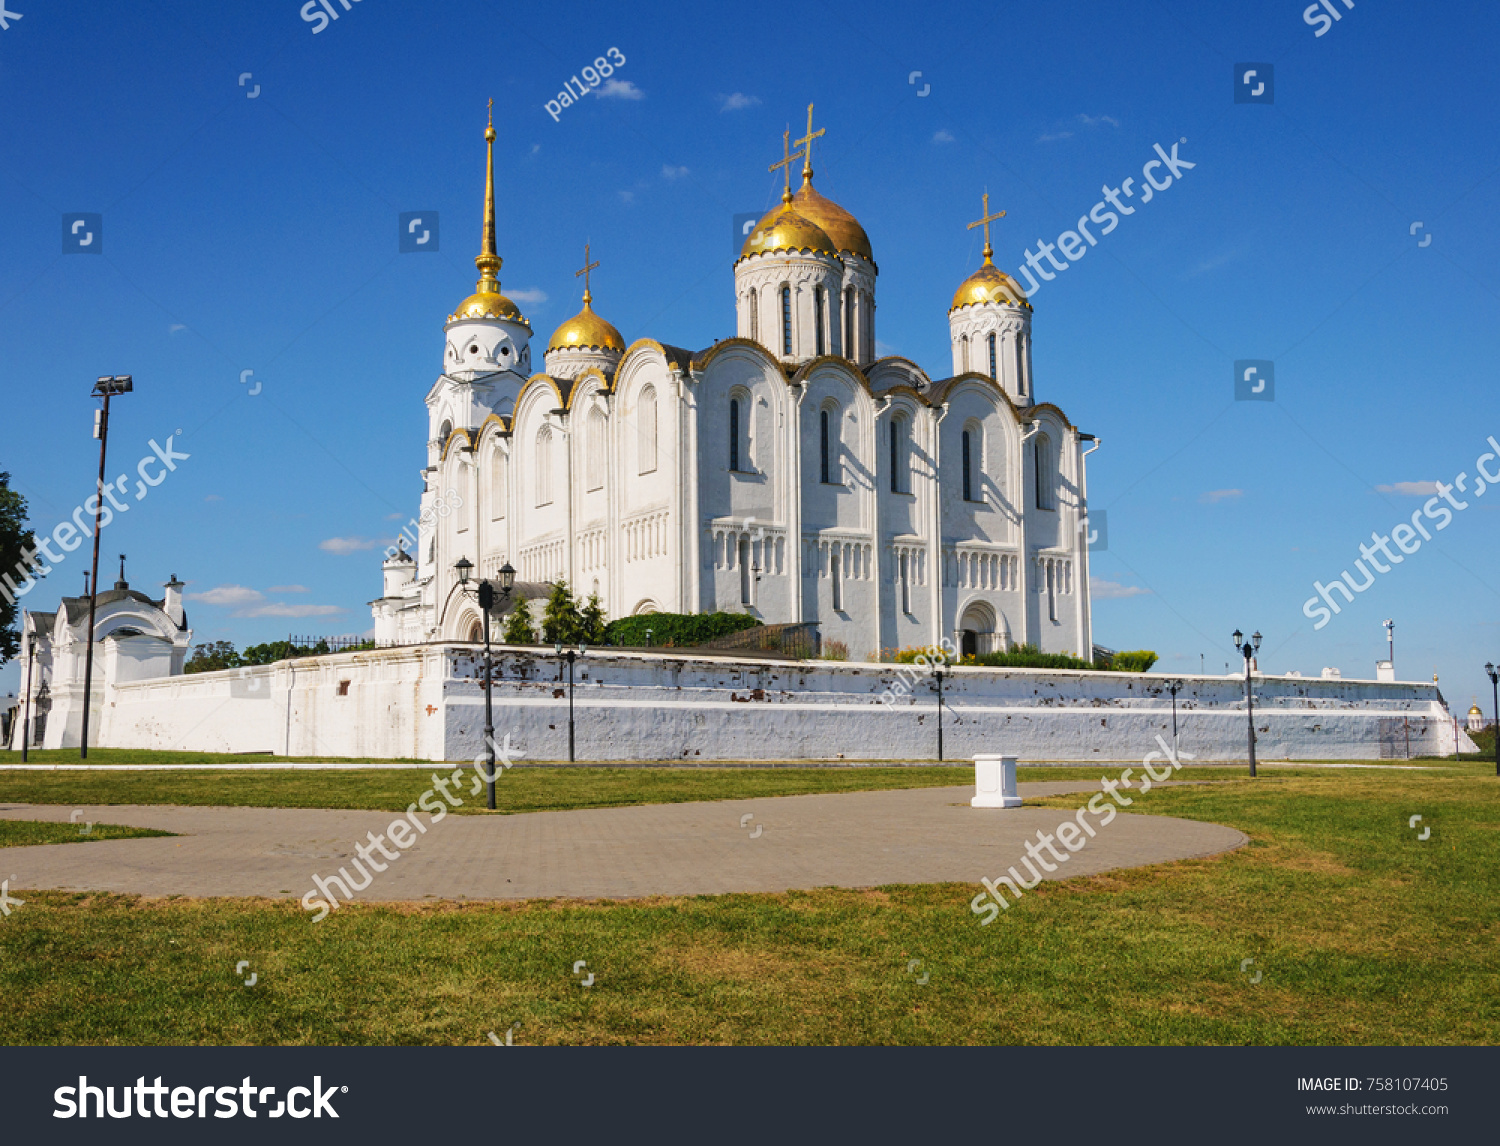 Sights of the city of Vladimir: description and photos 61